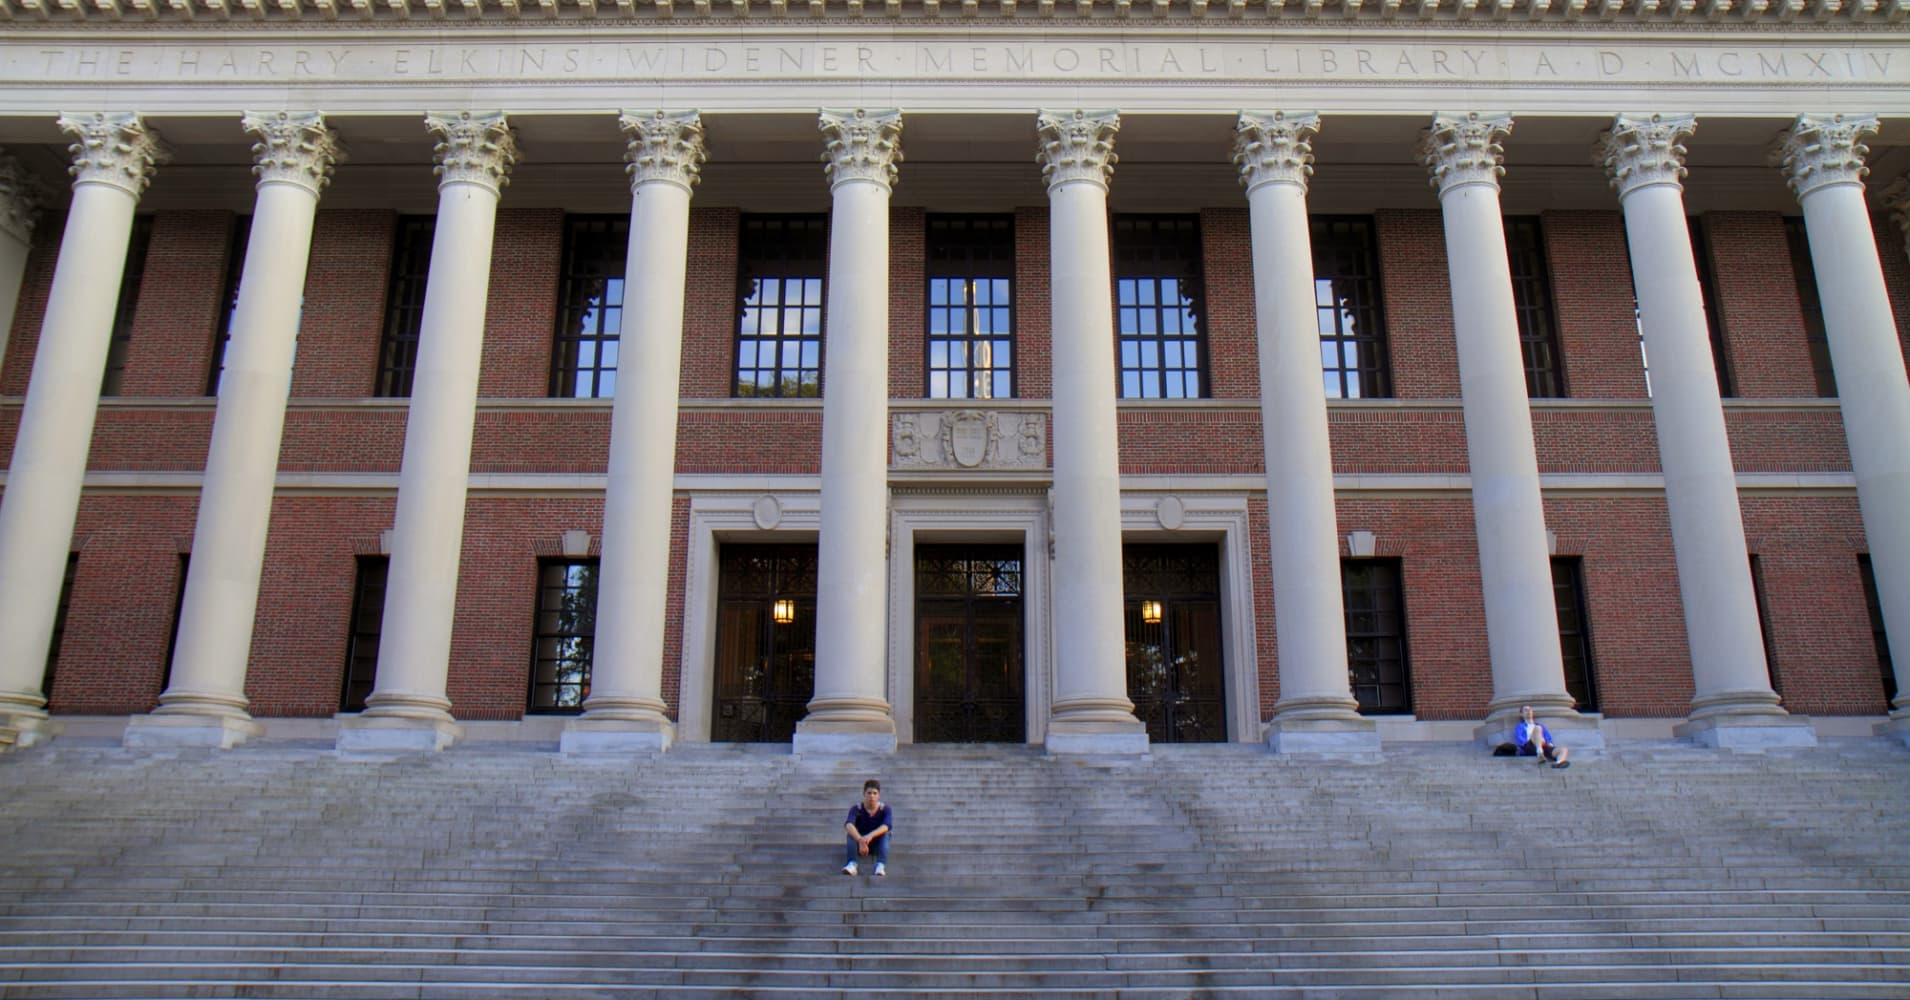 The 15 best business schools in the US, according to US News & World Report